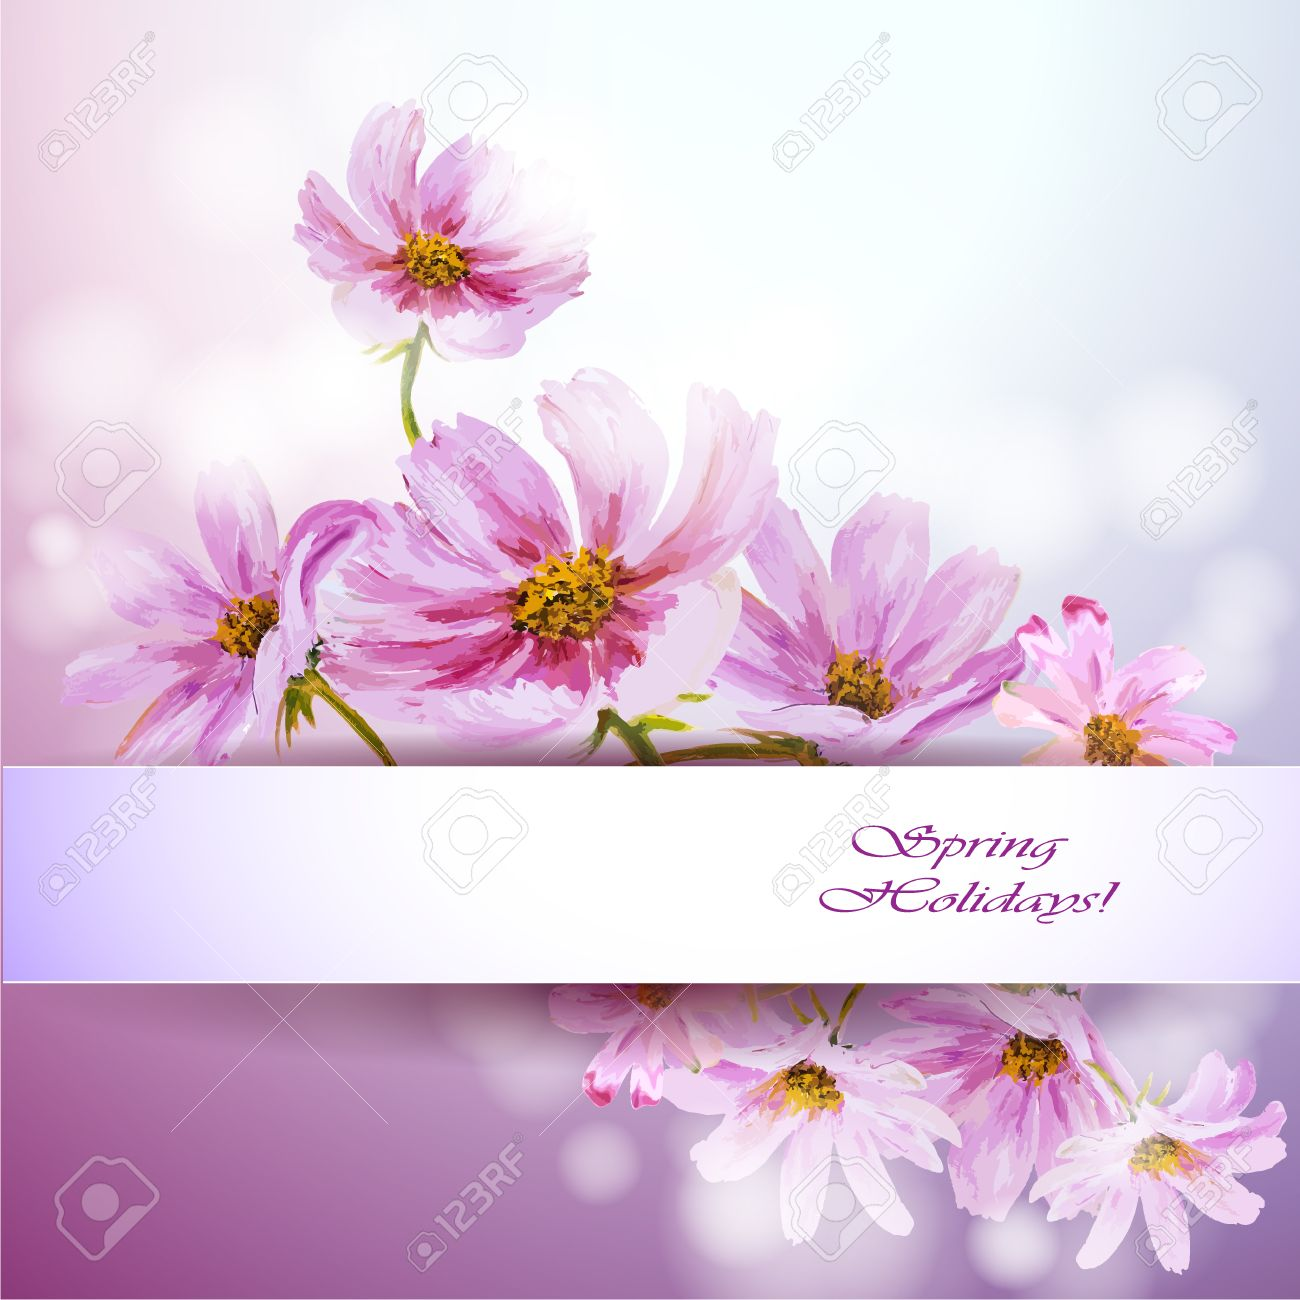 cosmos flowers background spring flowers invitation template